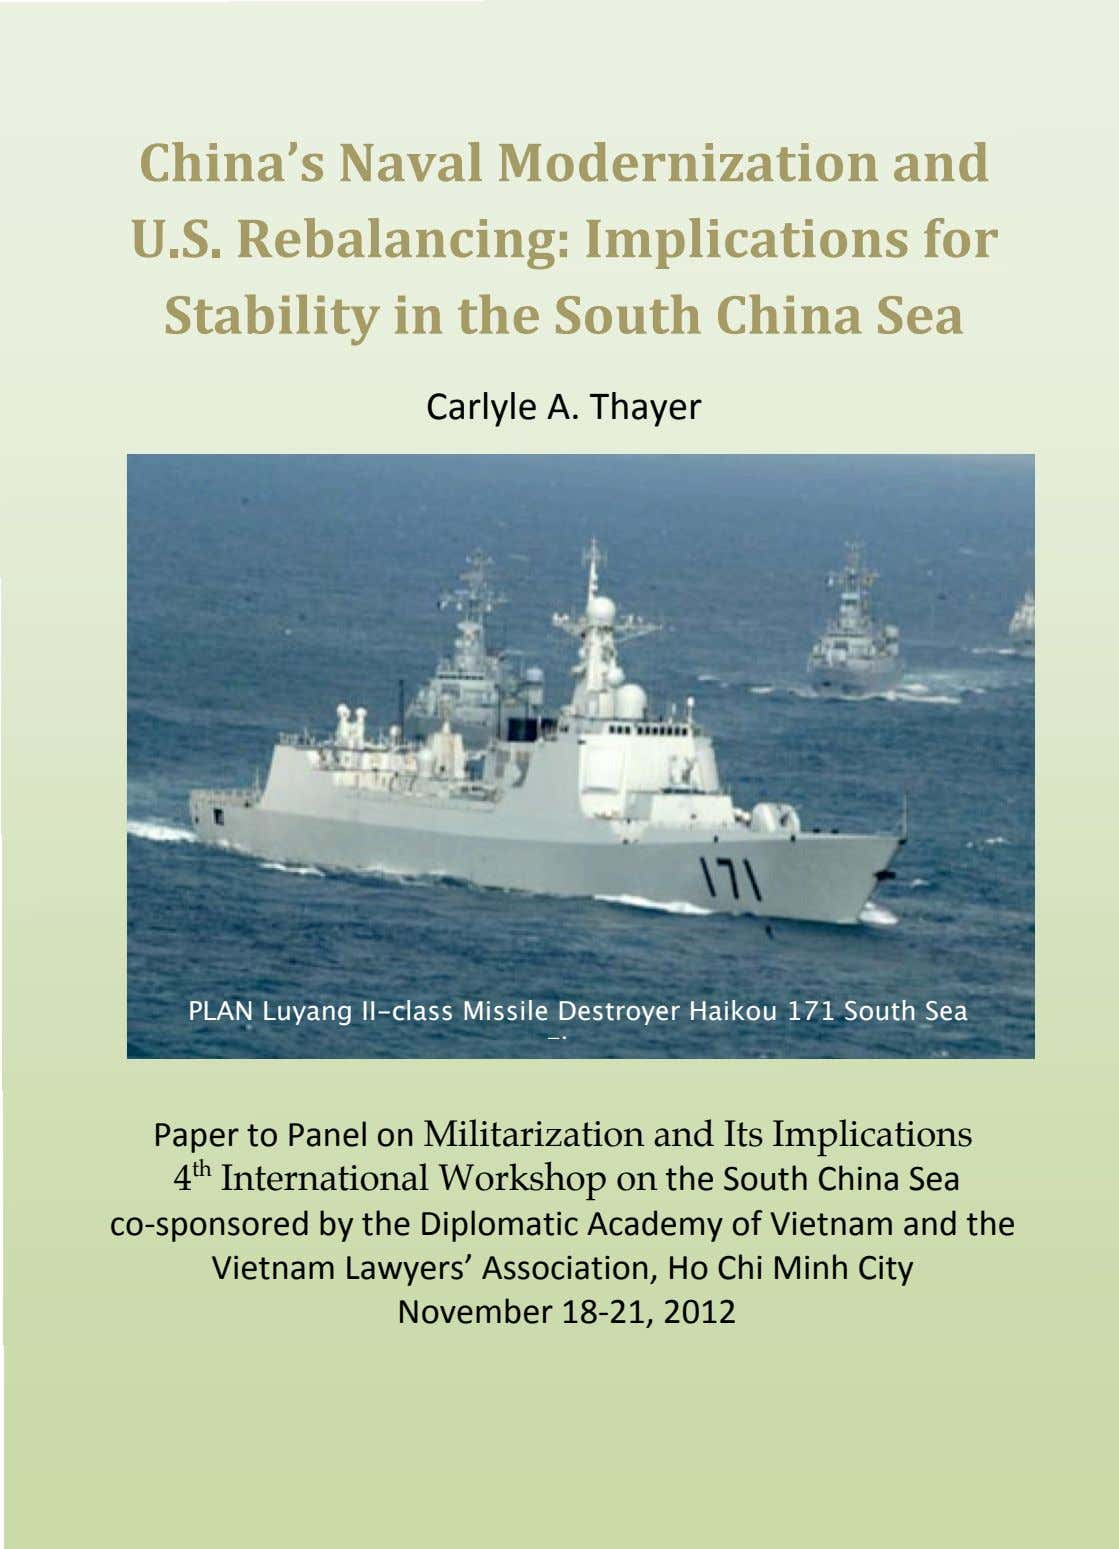 China's Naval Modernization and U . S. Rebalancing: Implications for Stability in the South China